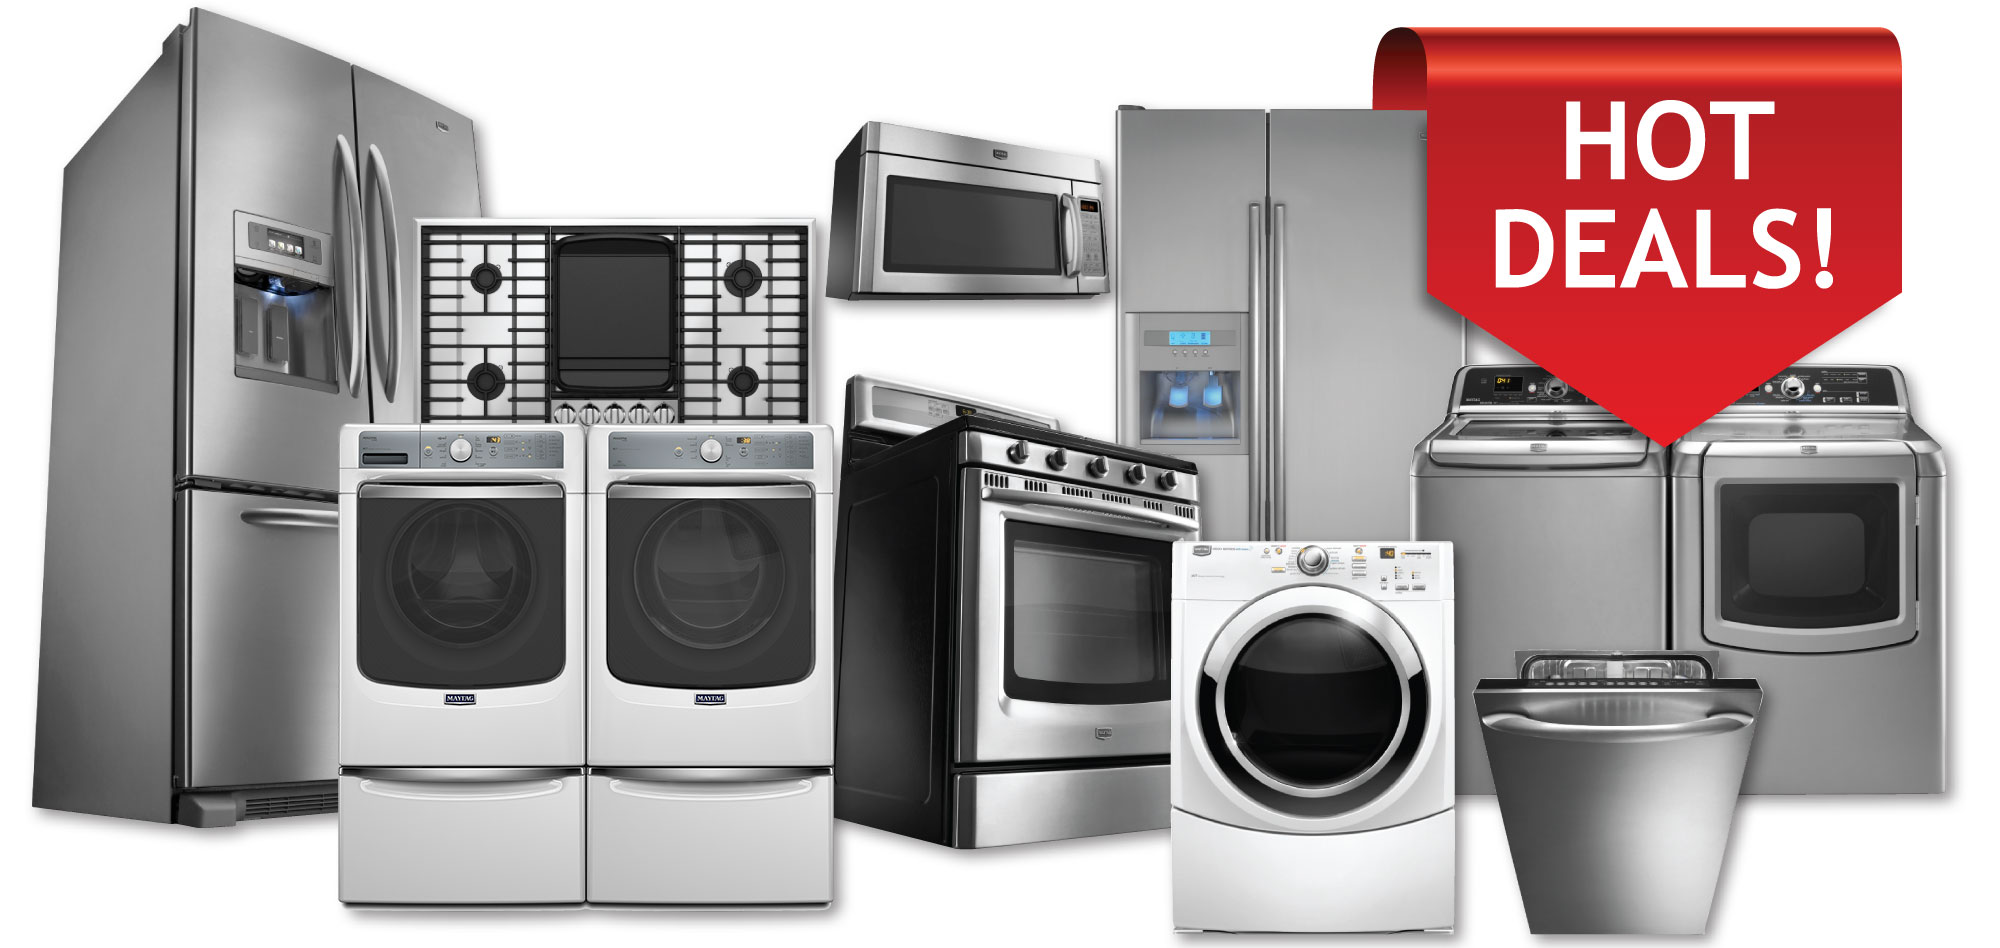 Top 10 Best Home Appliances Brands in India 2019